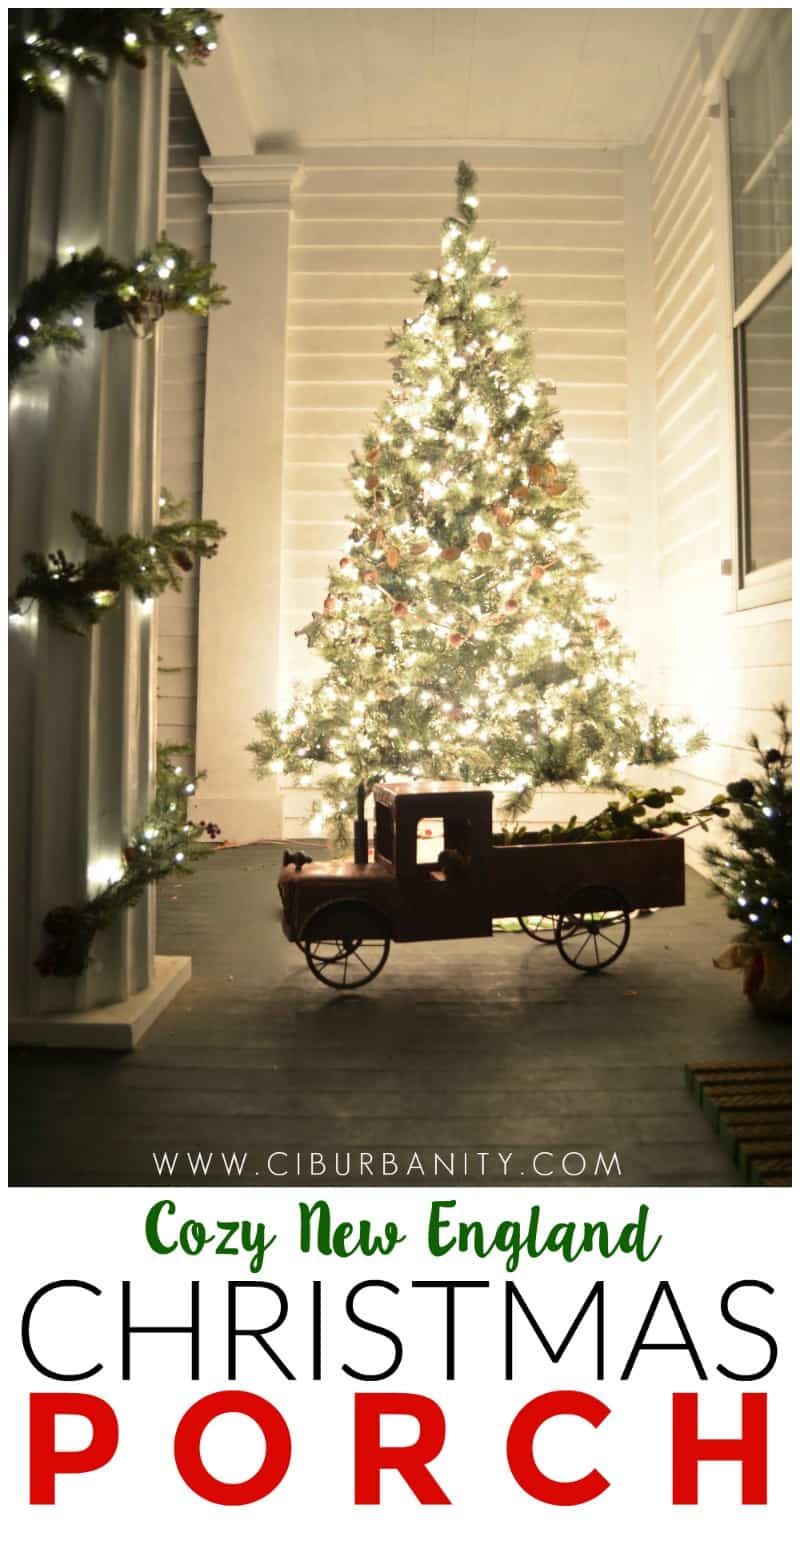 Decorating our New England front porch for Christmas, Connecticut Style.